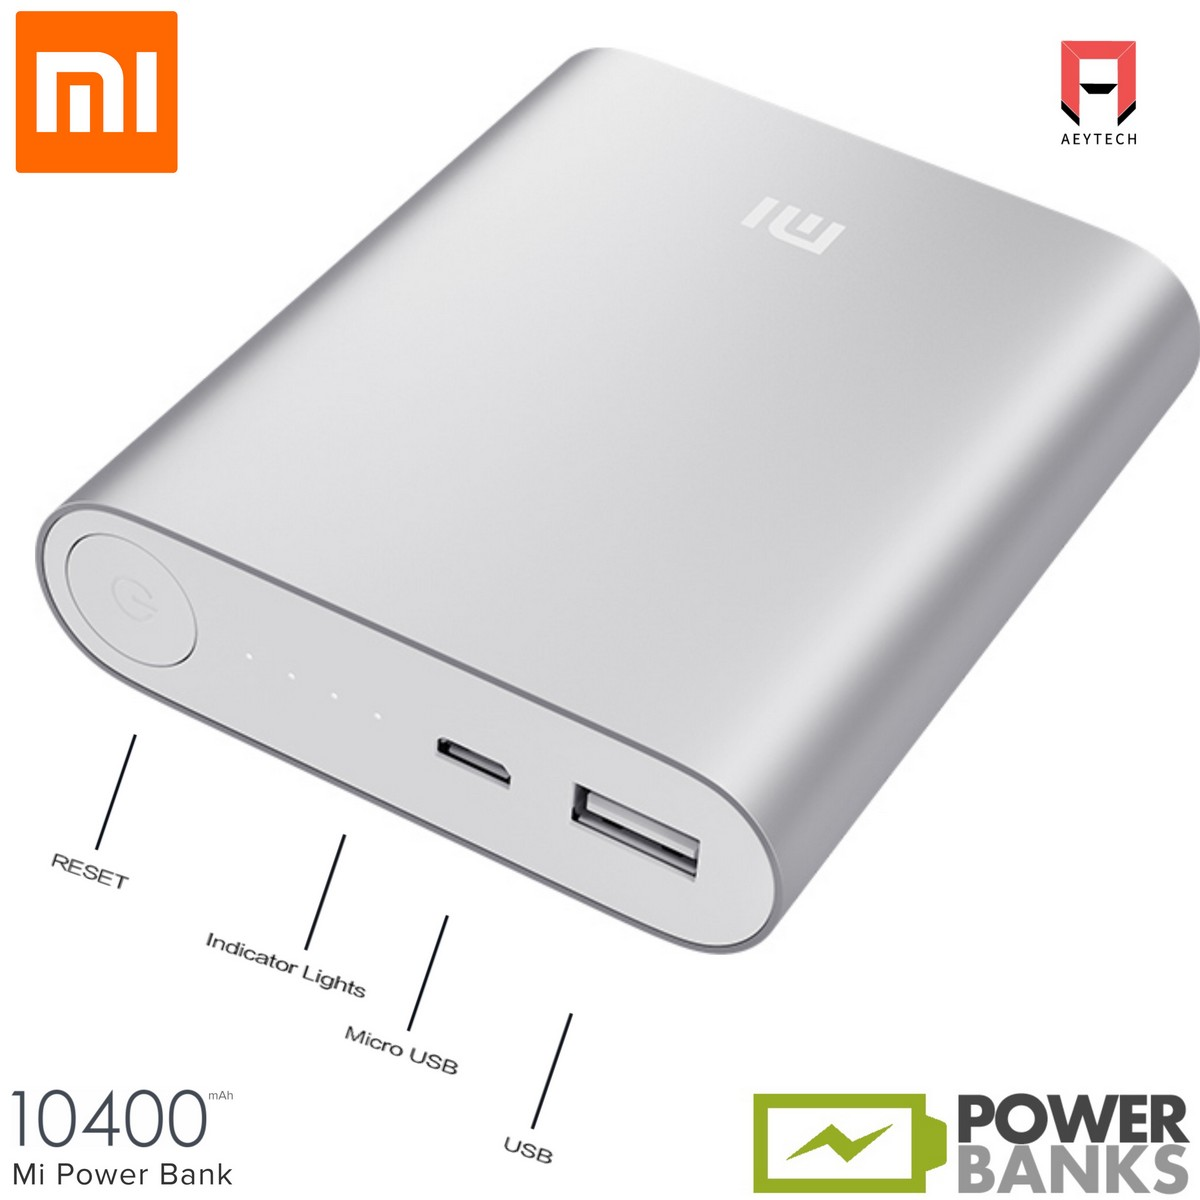 Aeytech Mi Xiaomi 10400mAh Power Bank ultra compact Portable Charger PowerBank DC5.1V-2.1A Android iPhone